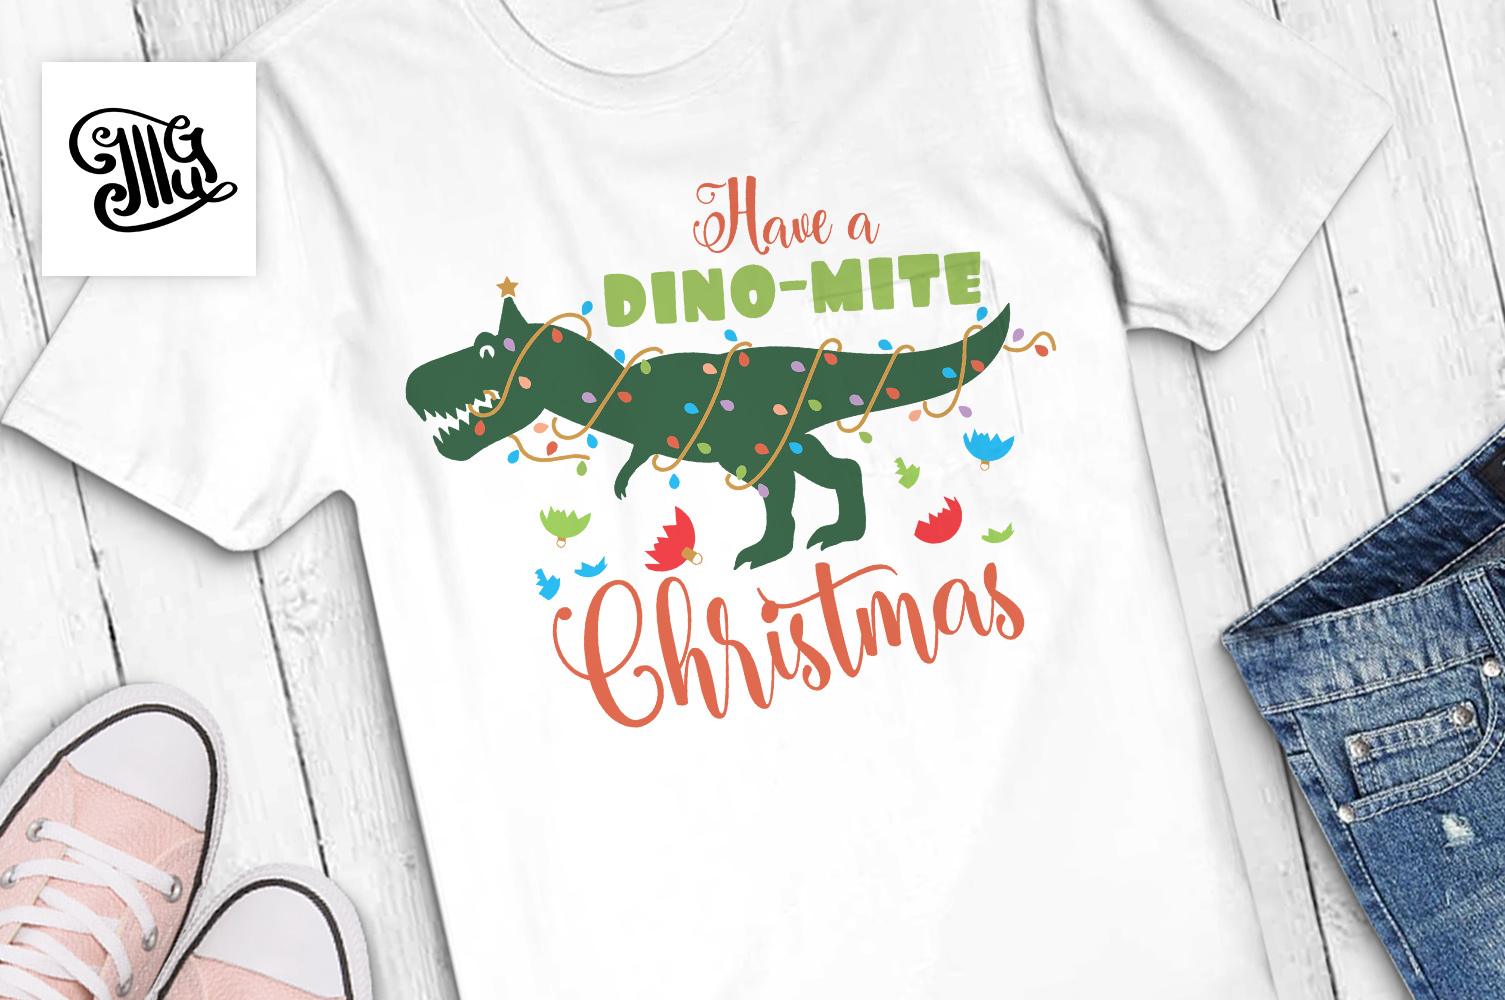 Have a dinomite Christmas - kids example image 1